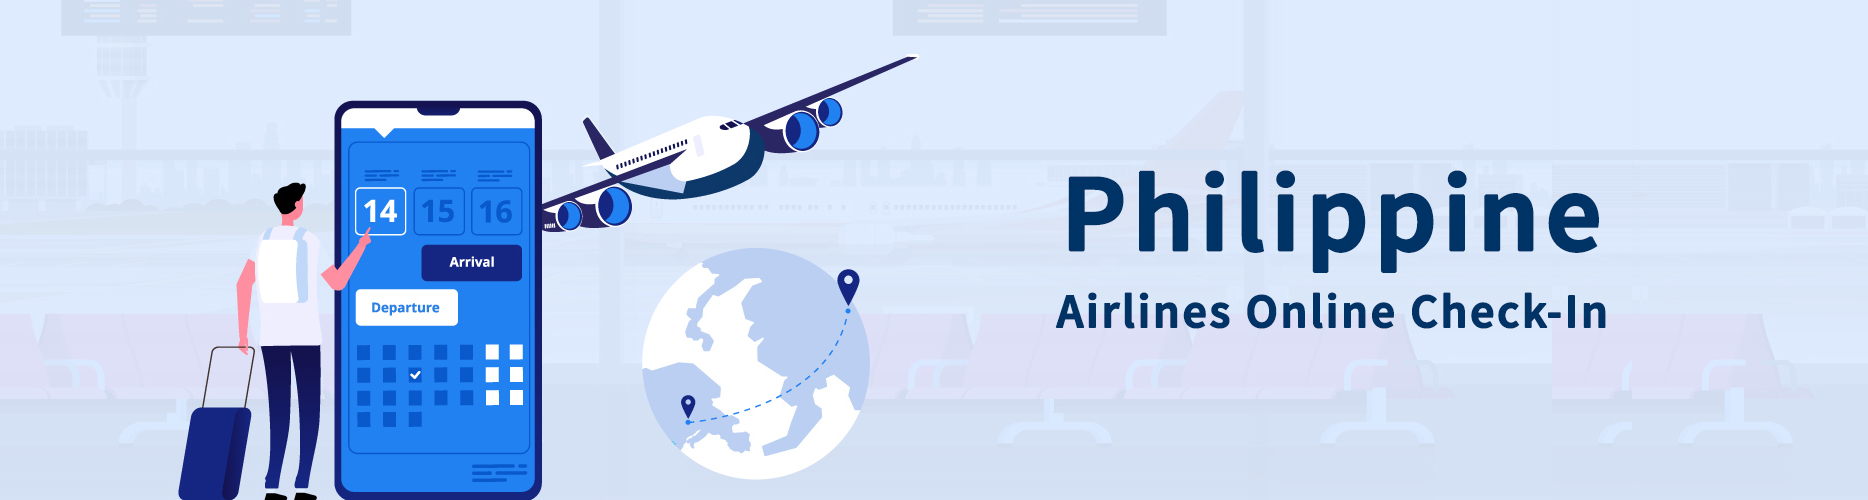 Philippine-Airlines-Online-Check-In